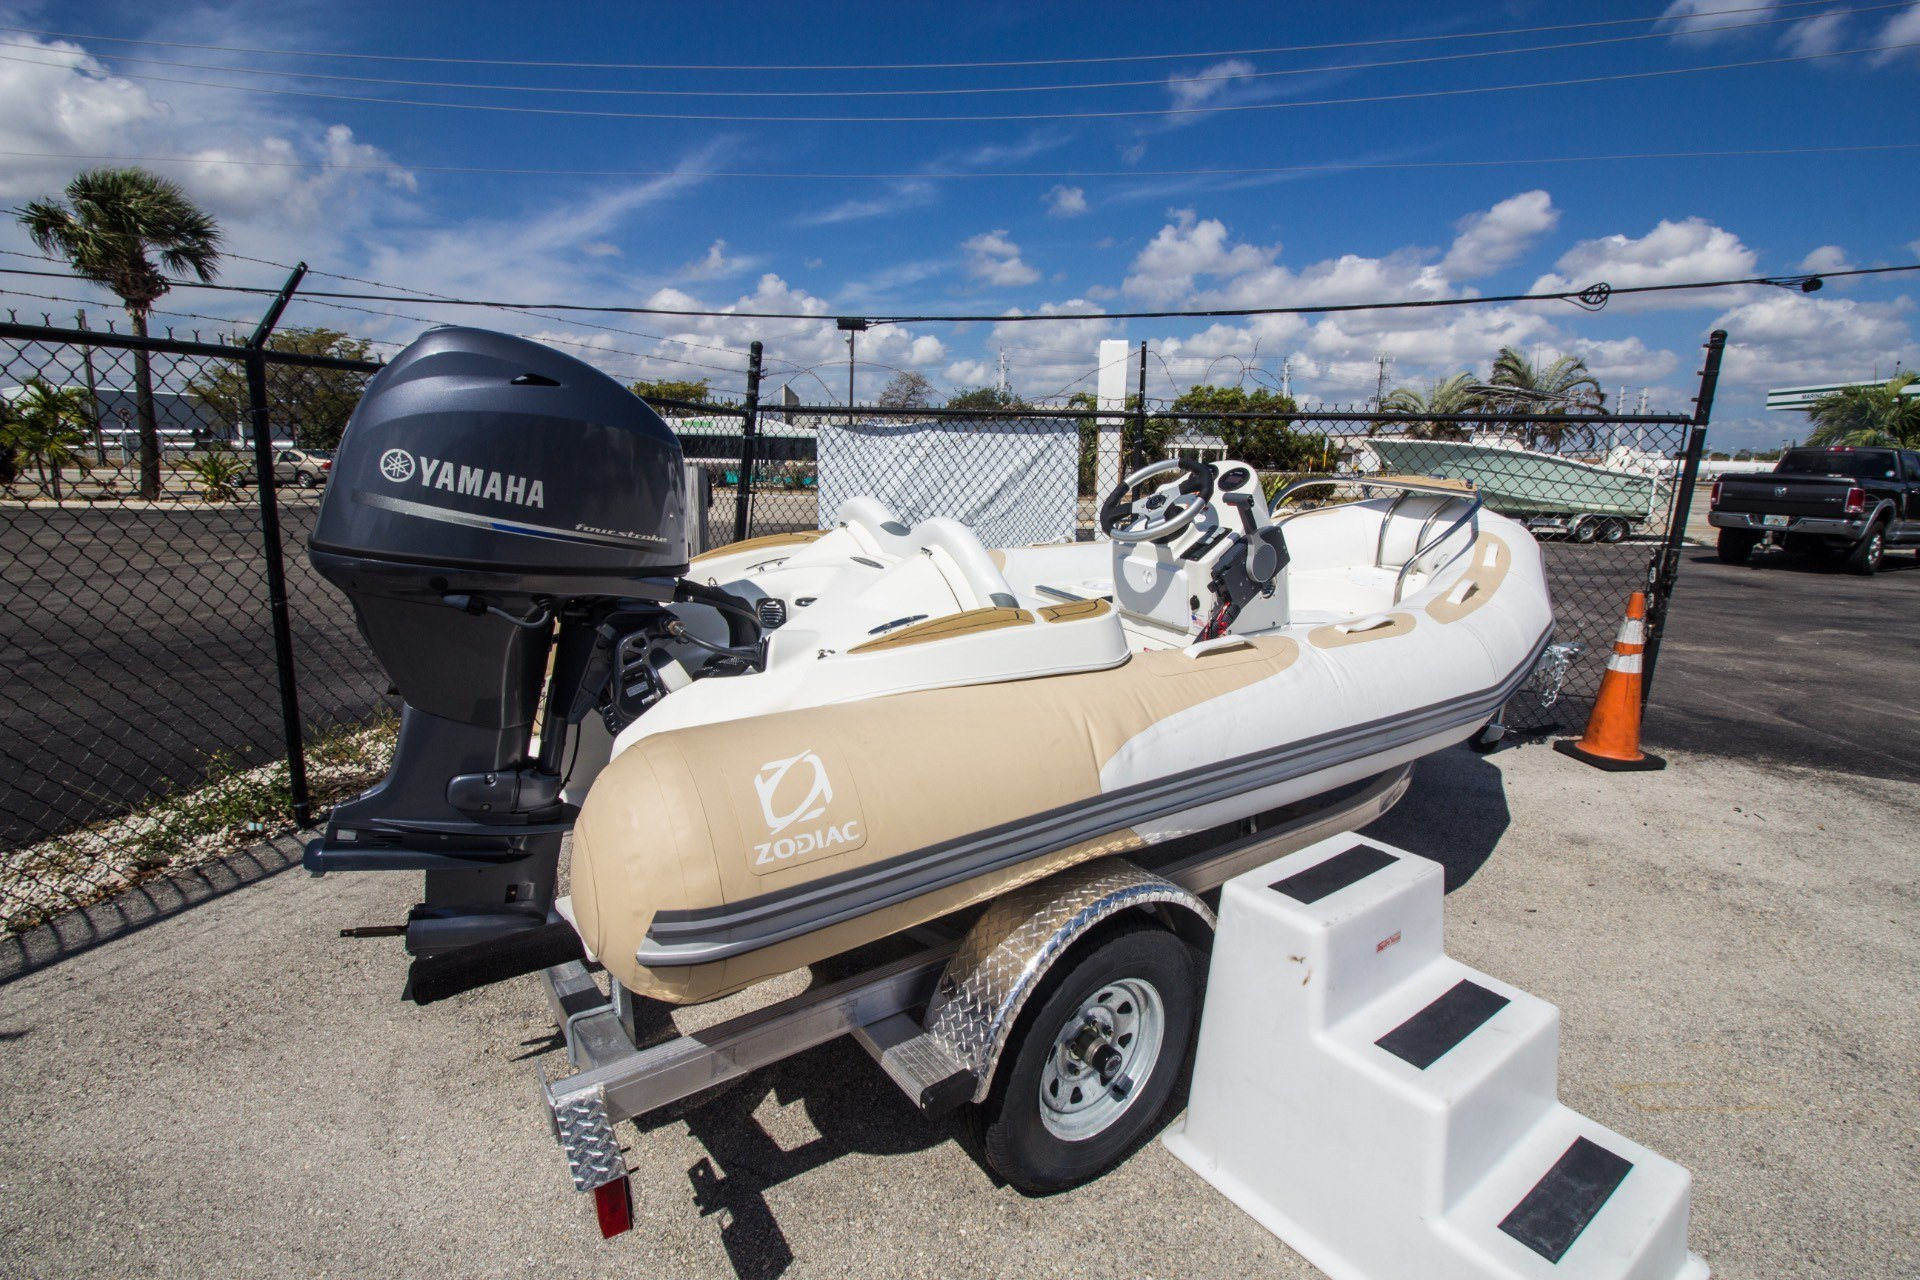 2016 Zodiac Yachtline in Stuart, Florida